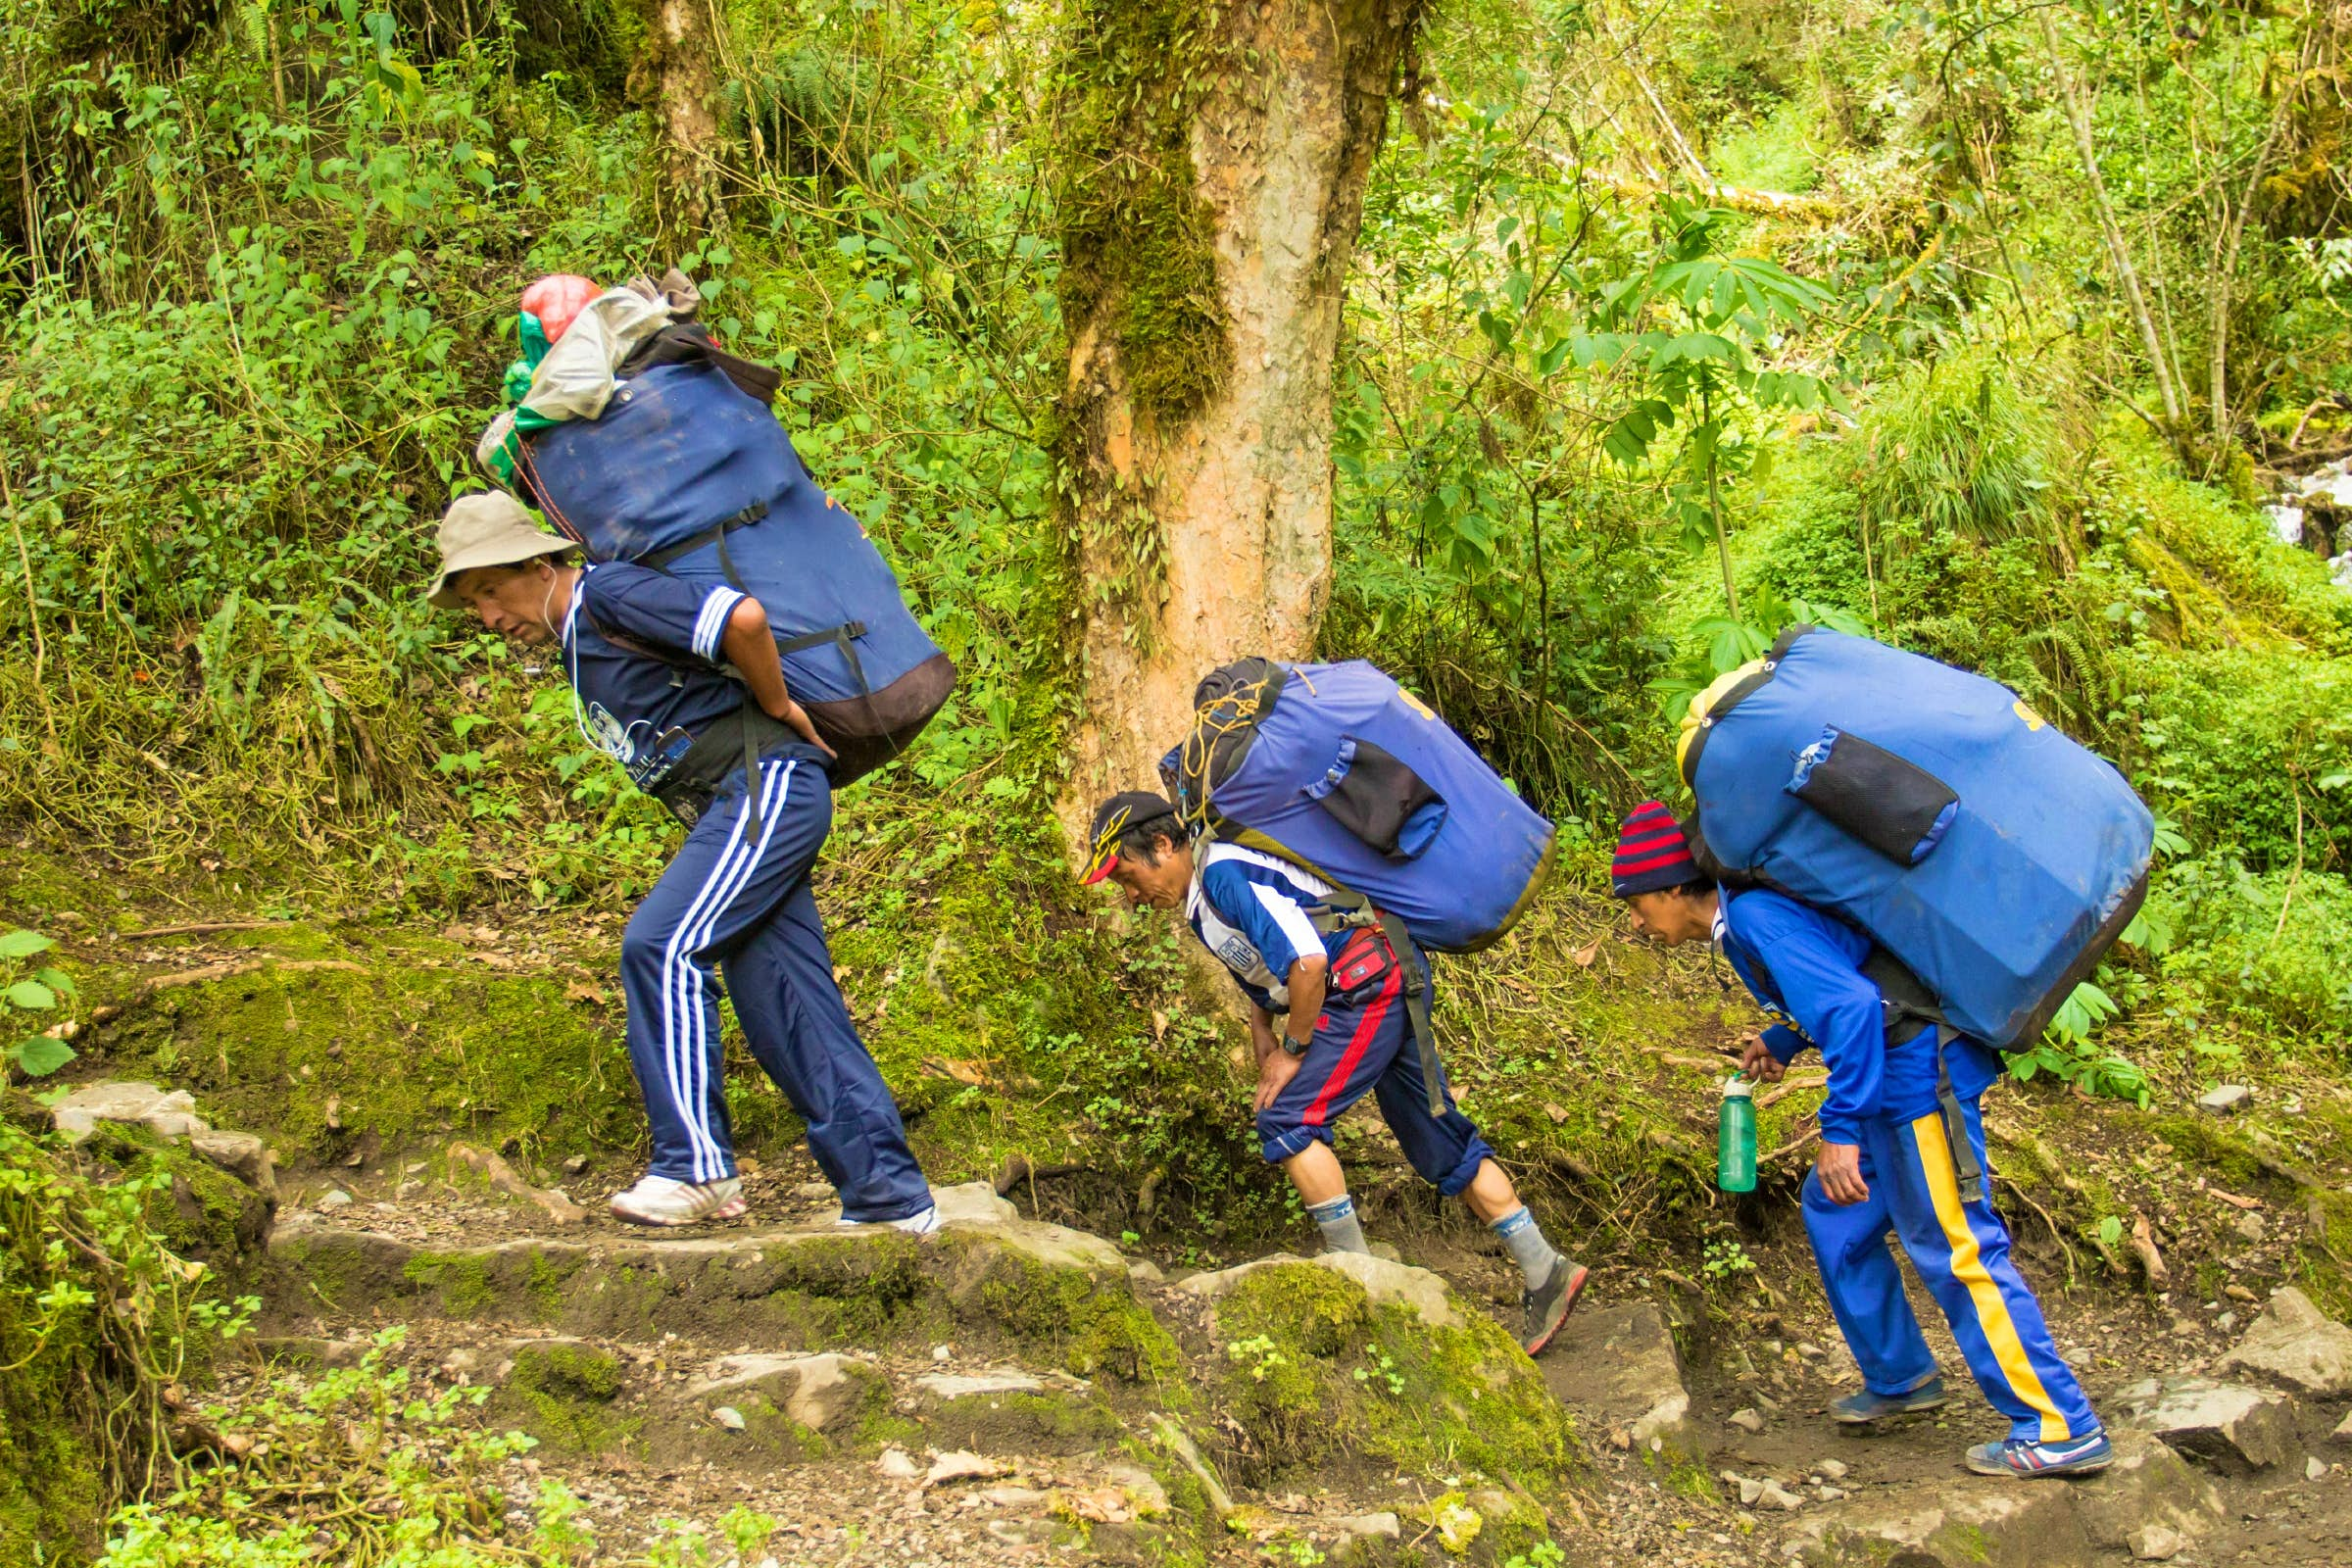 Peruvian porters with loaded packs carrying camping gear for hikers on the Inca Trail.